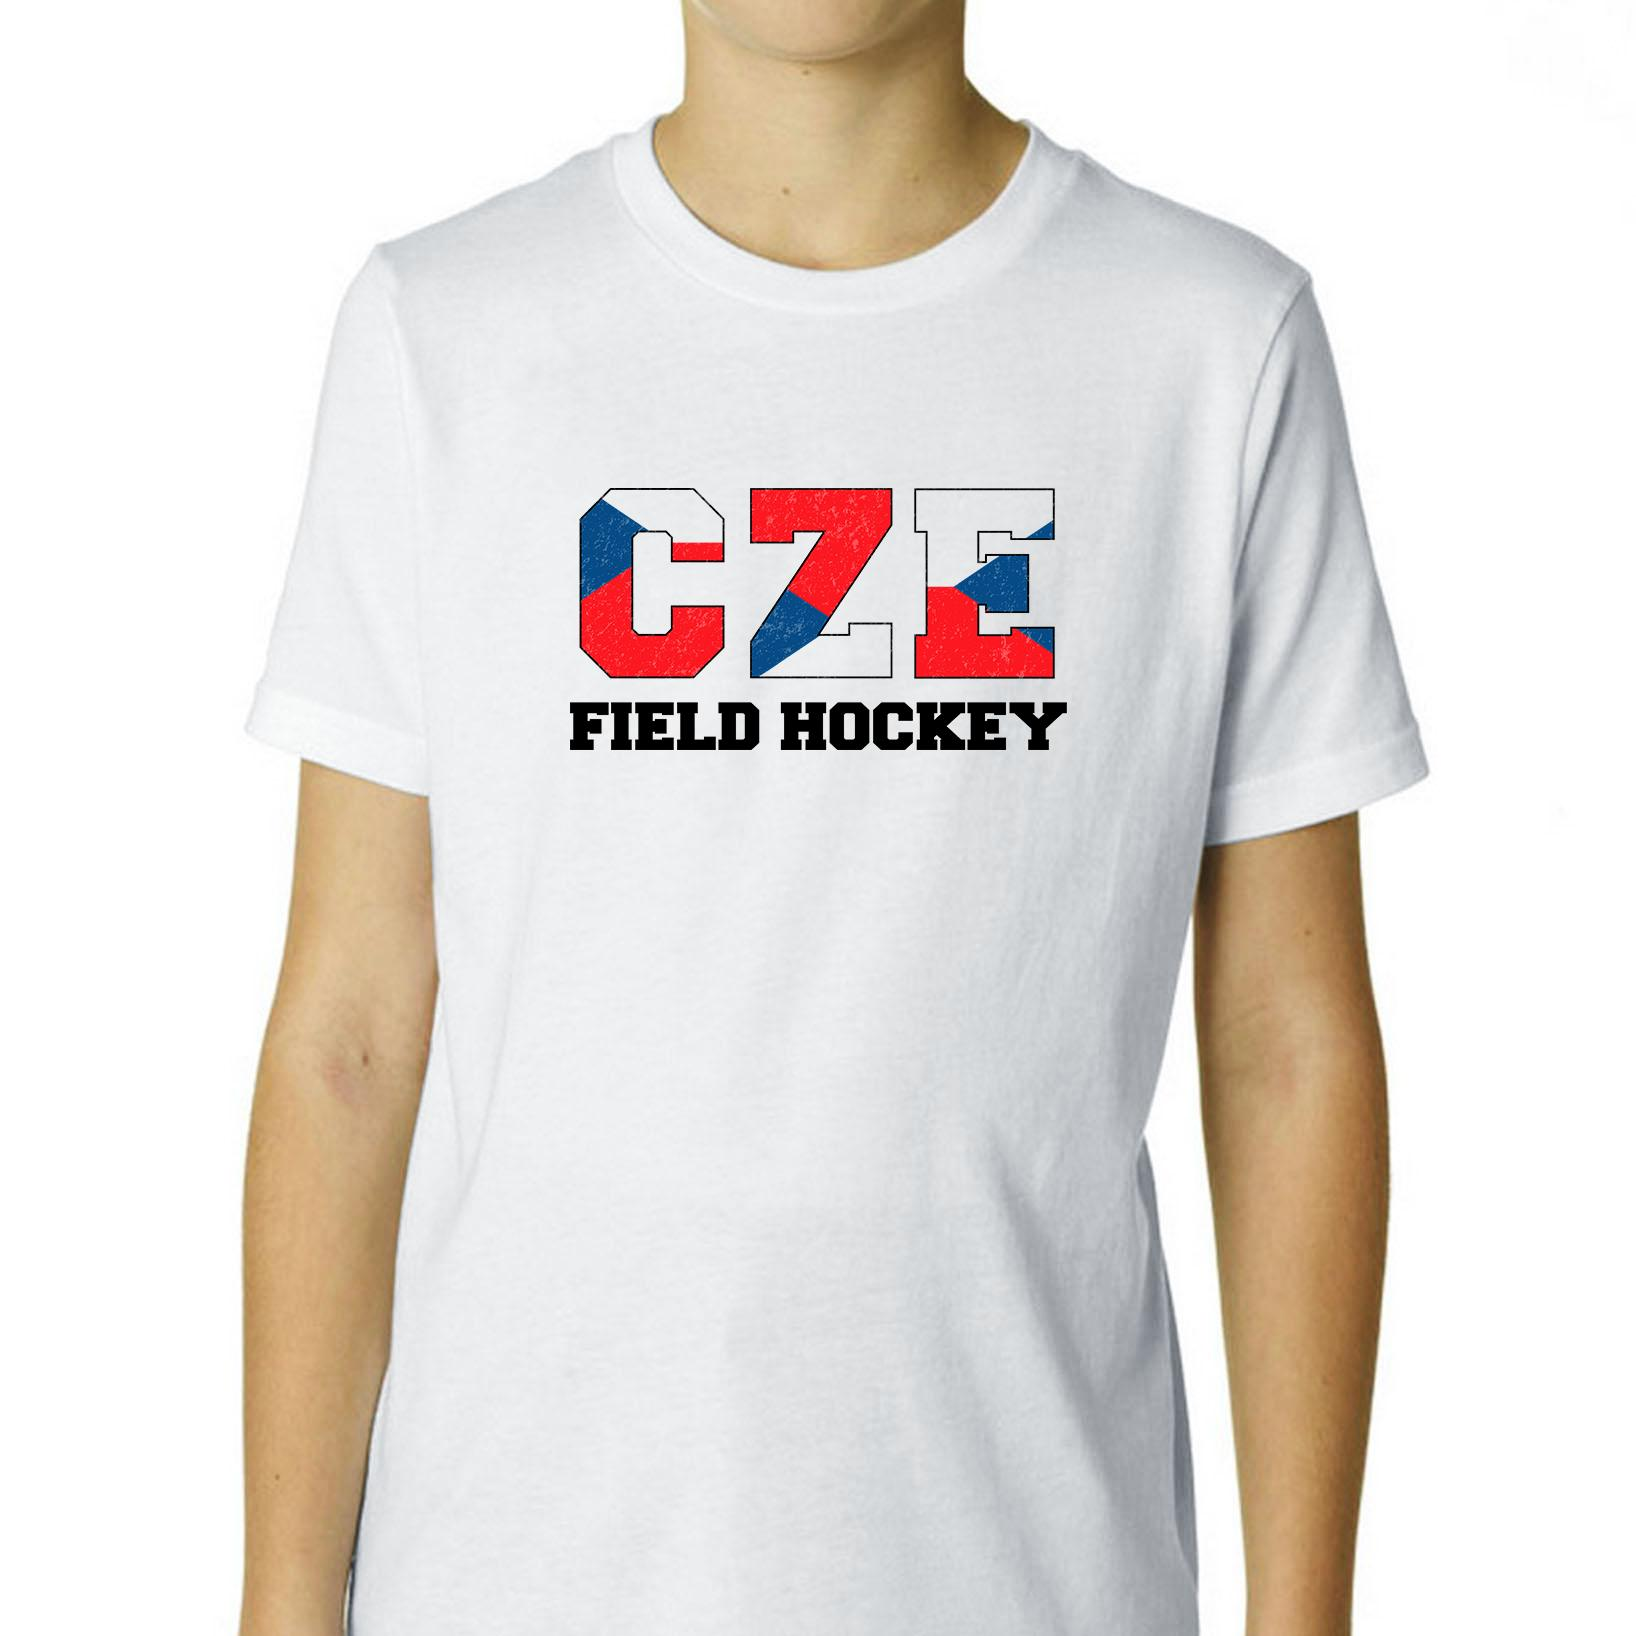 Czech Republic Field Hockey Olympic Games Rio Flag Boy's Cotton Youth T-Shirt by Hollywood Thread